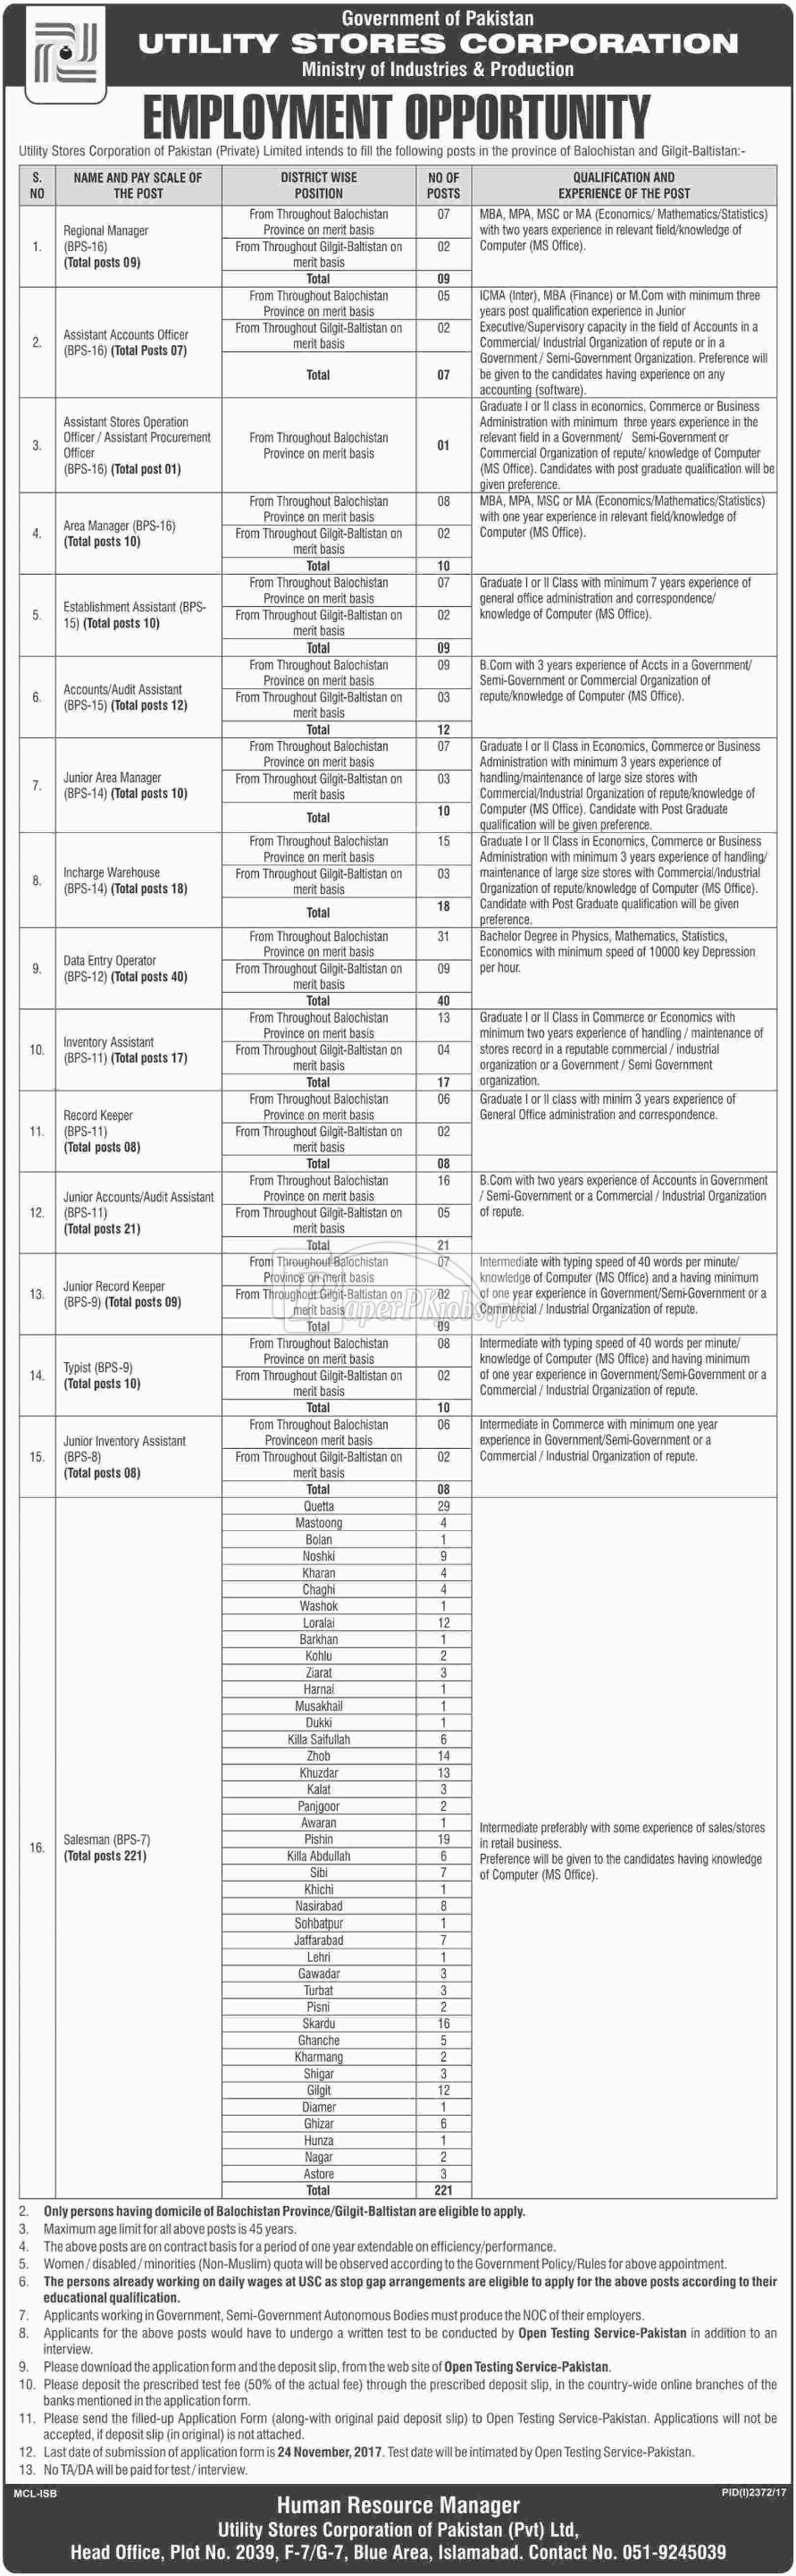 Utility Stores Corporation of Pakistan OTS Jobs 2017